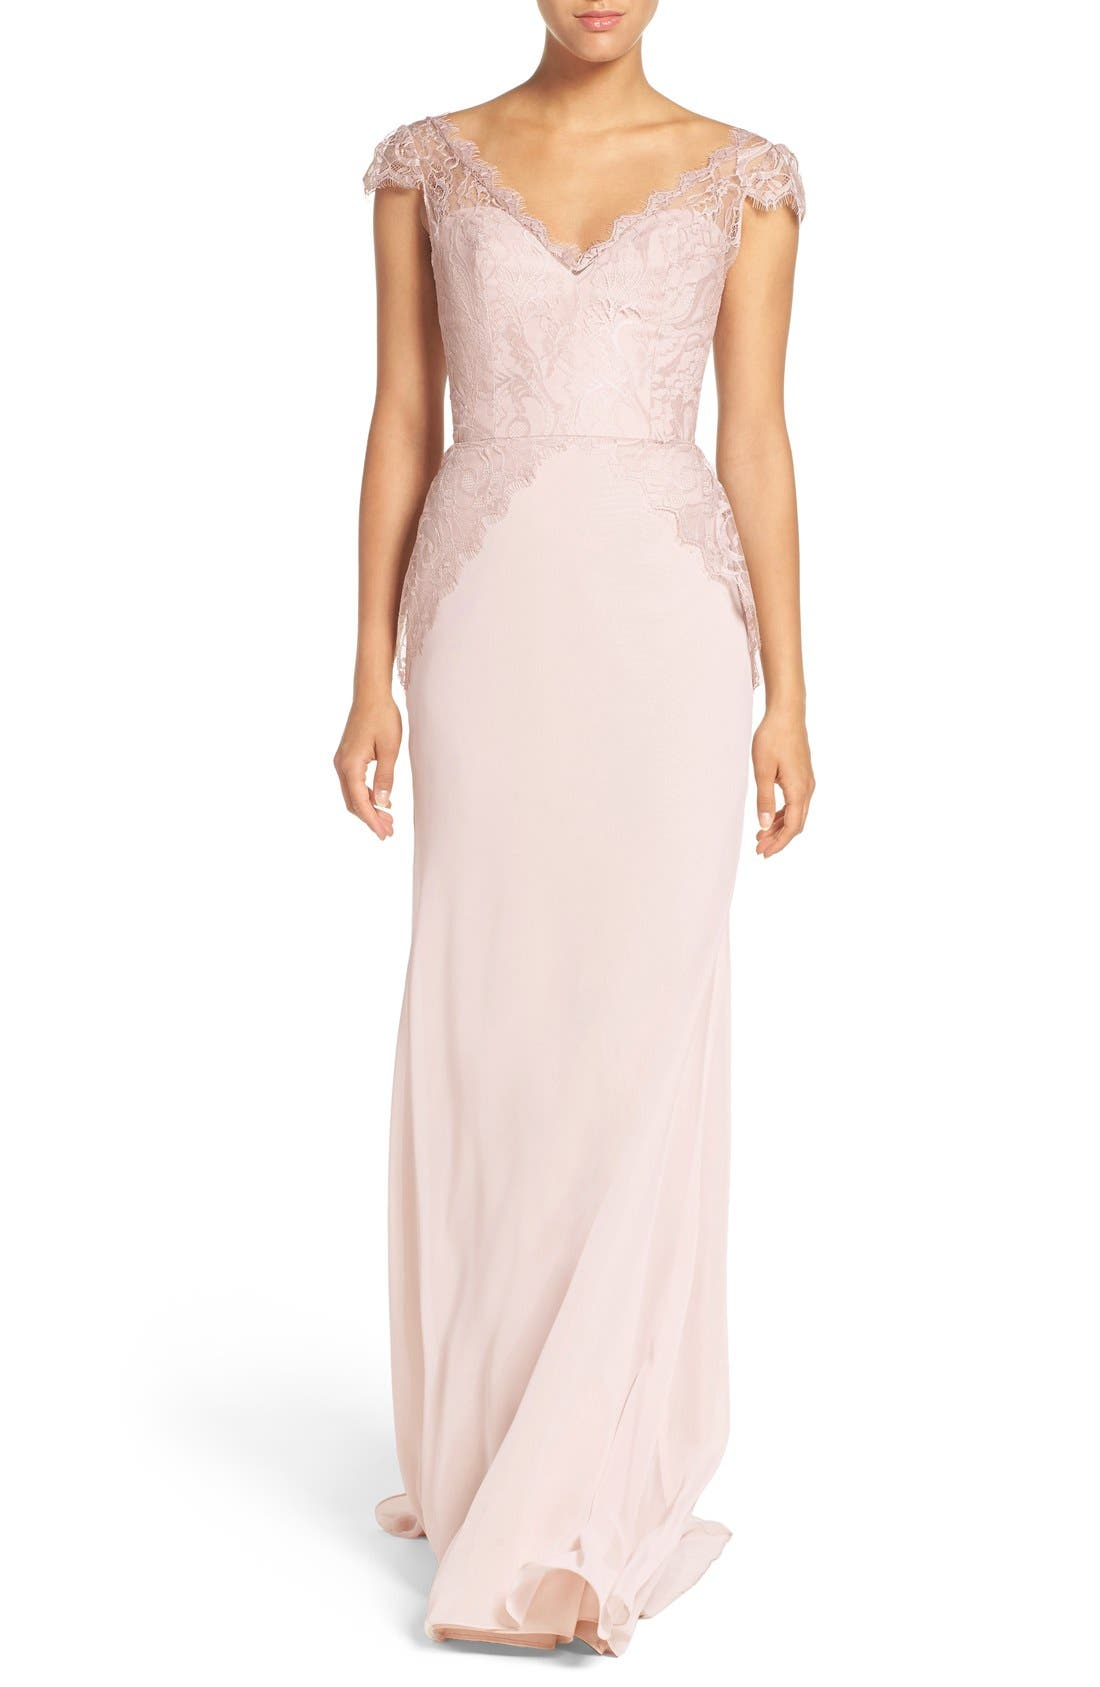 Cap Sleeve Lace & Chiffon Trumpet Gown,                             Main thumbnail 1, color,                             Rose/ Blush/ Cashmere